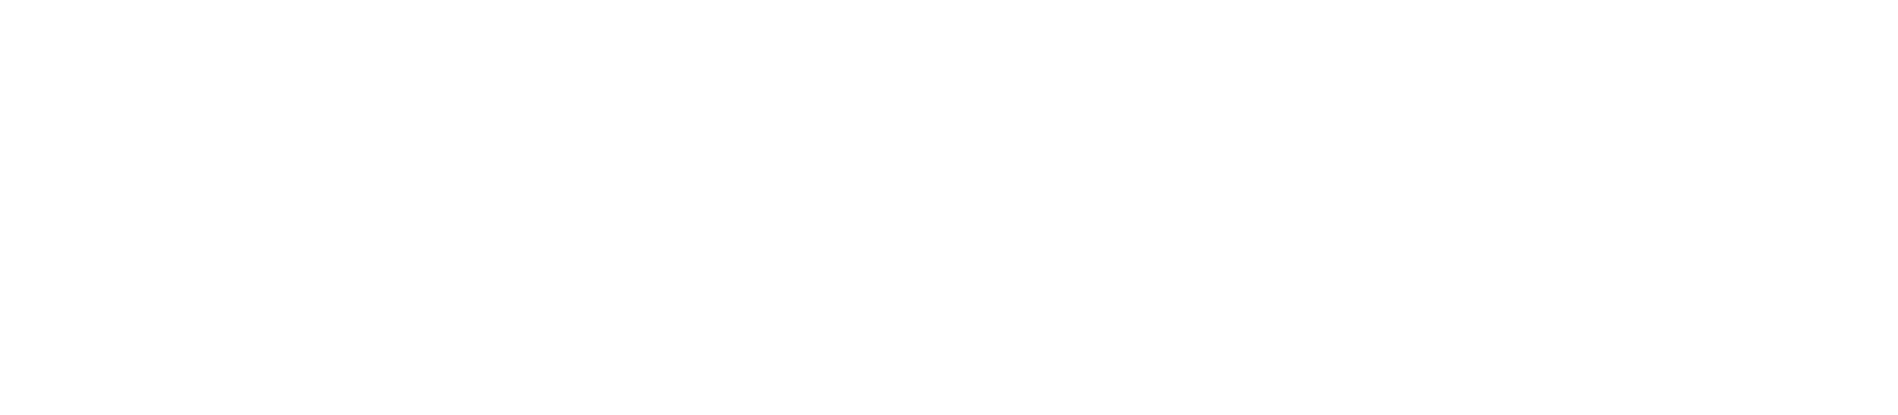 Toll Brothers Apartment Living logo in white